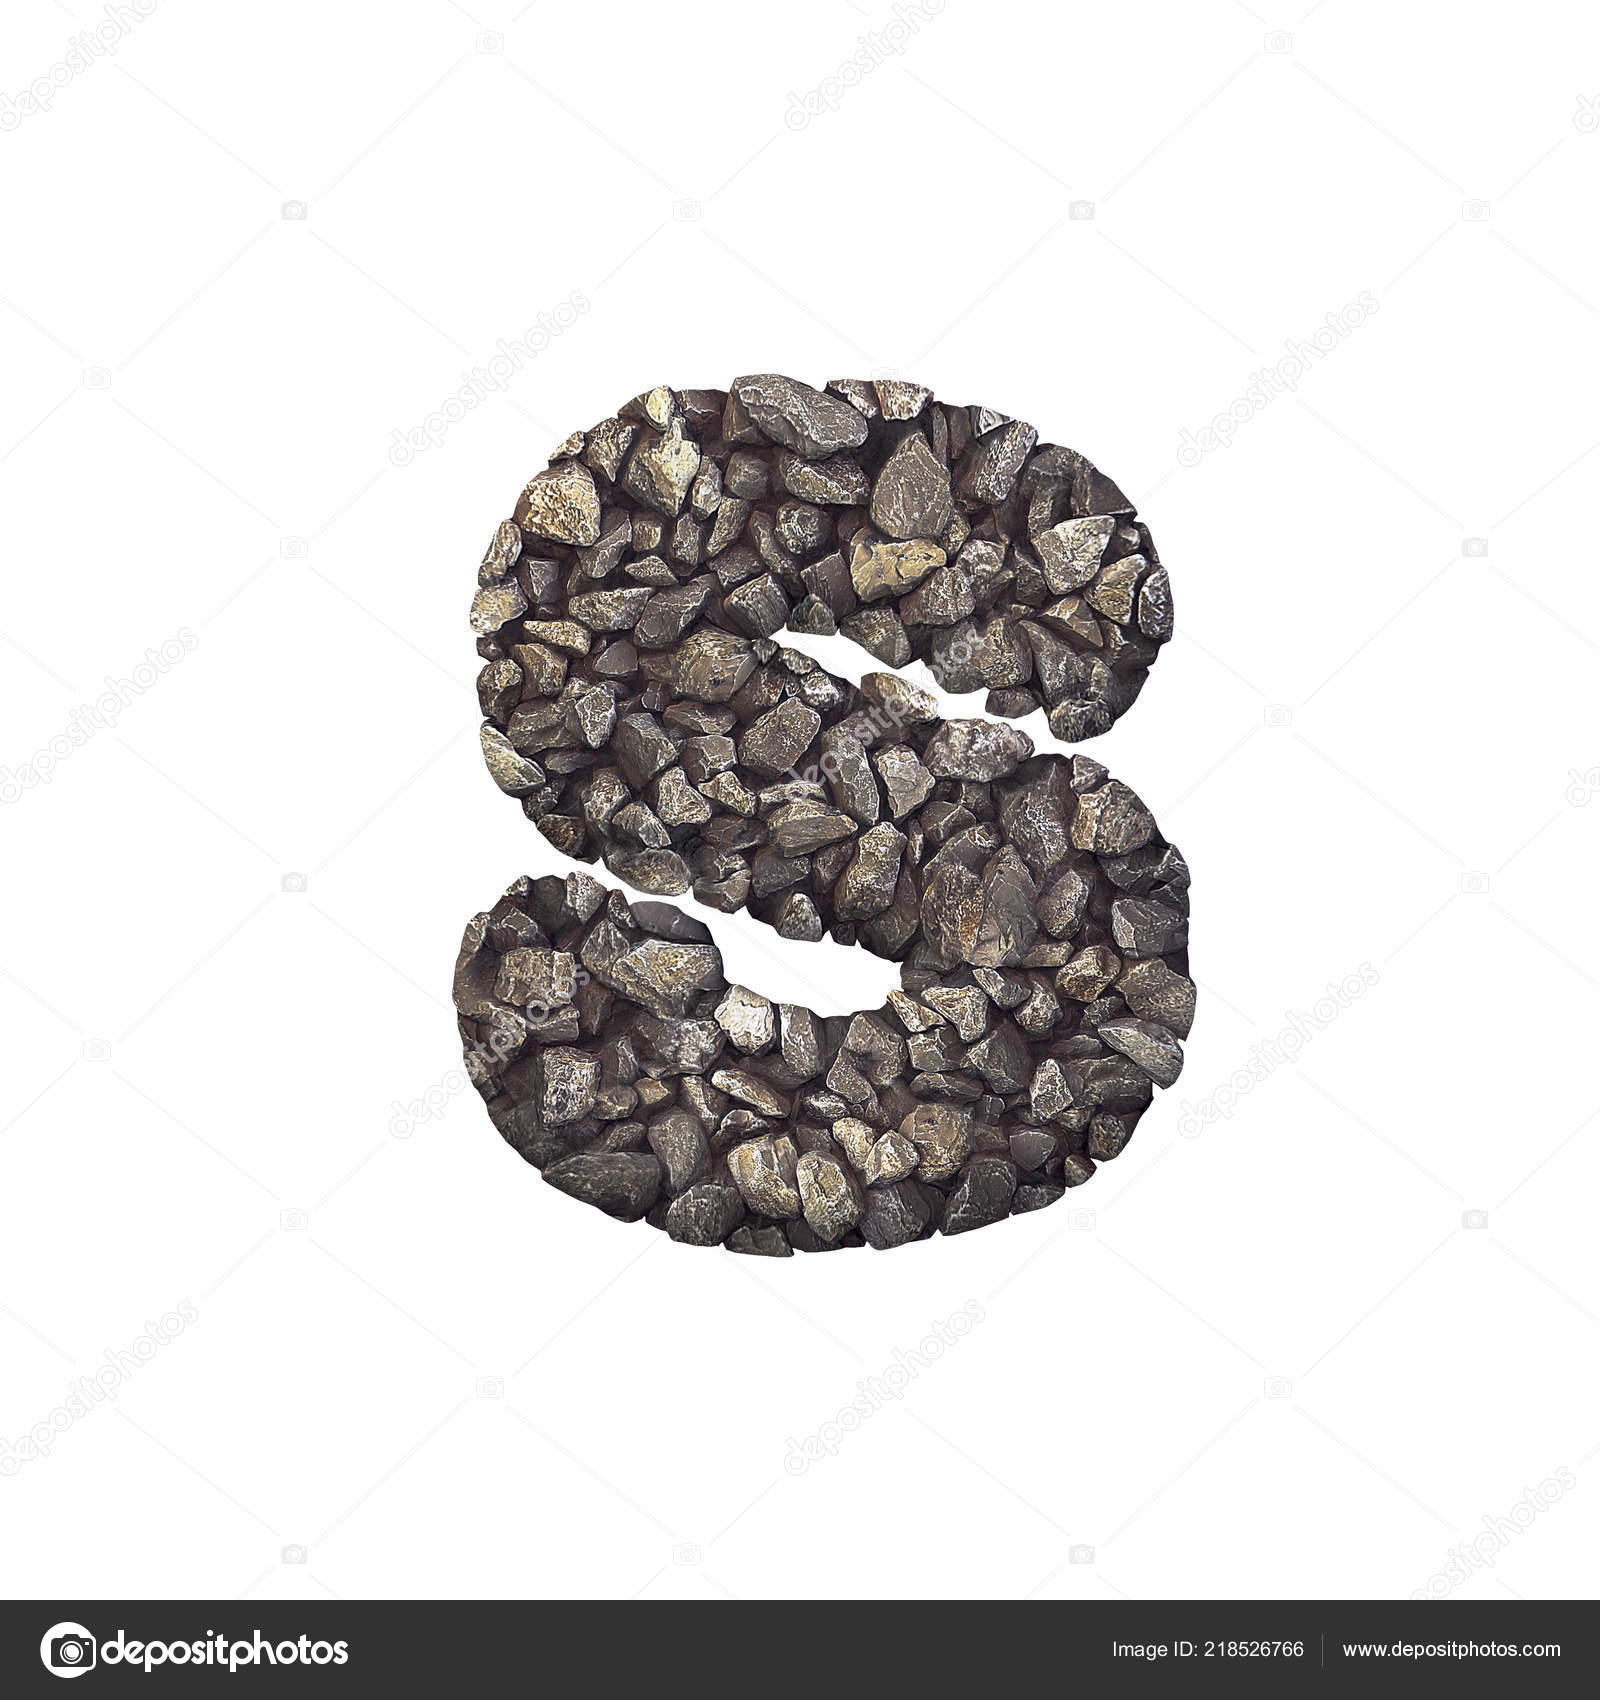 Gravel Letter Lowercase Crushed Rock Font Isolated White